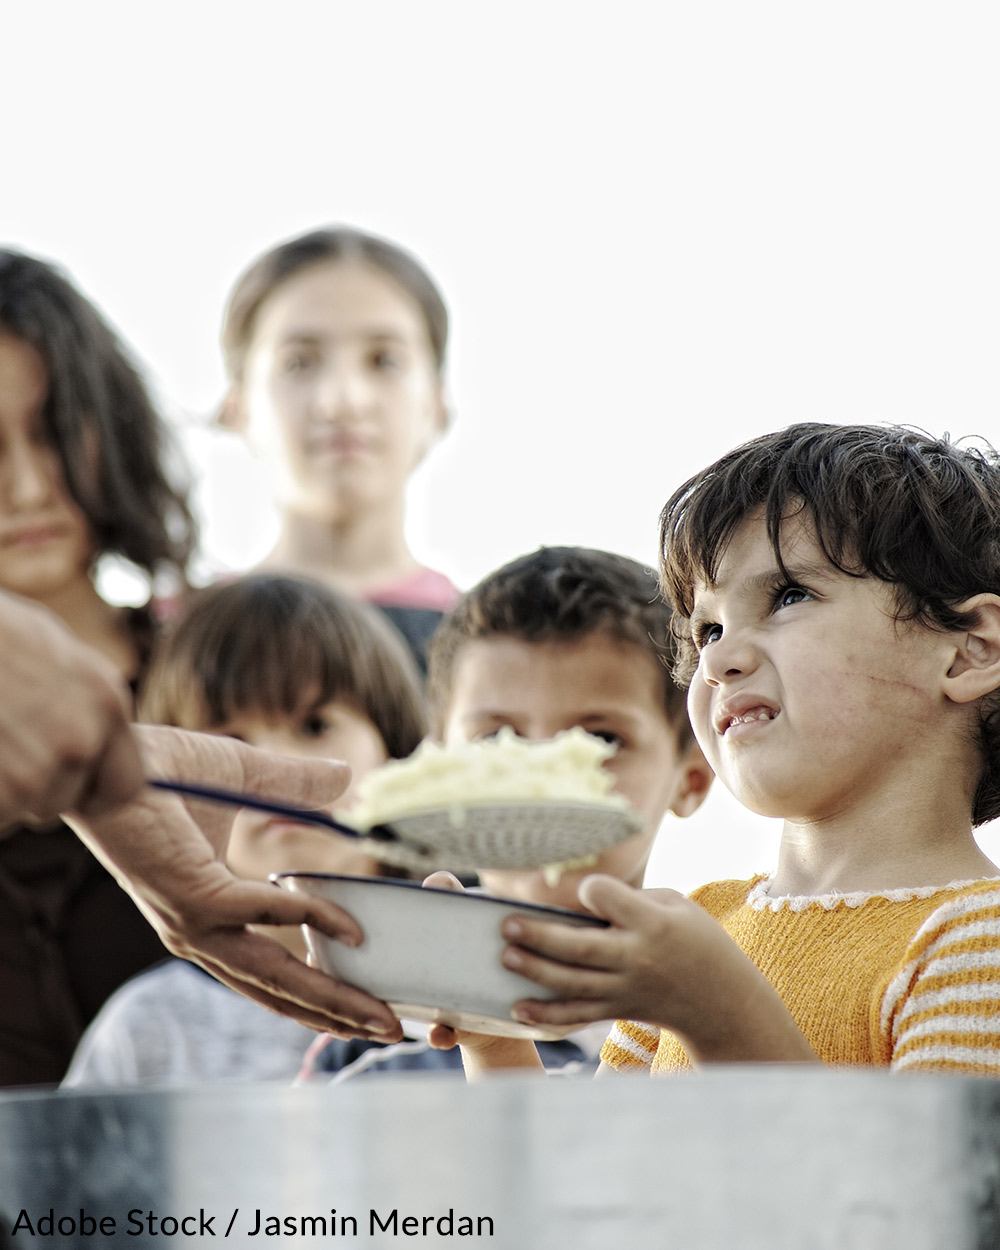 The U.N. is hoping to eliminate hunger by 2050.